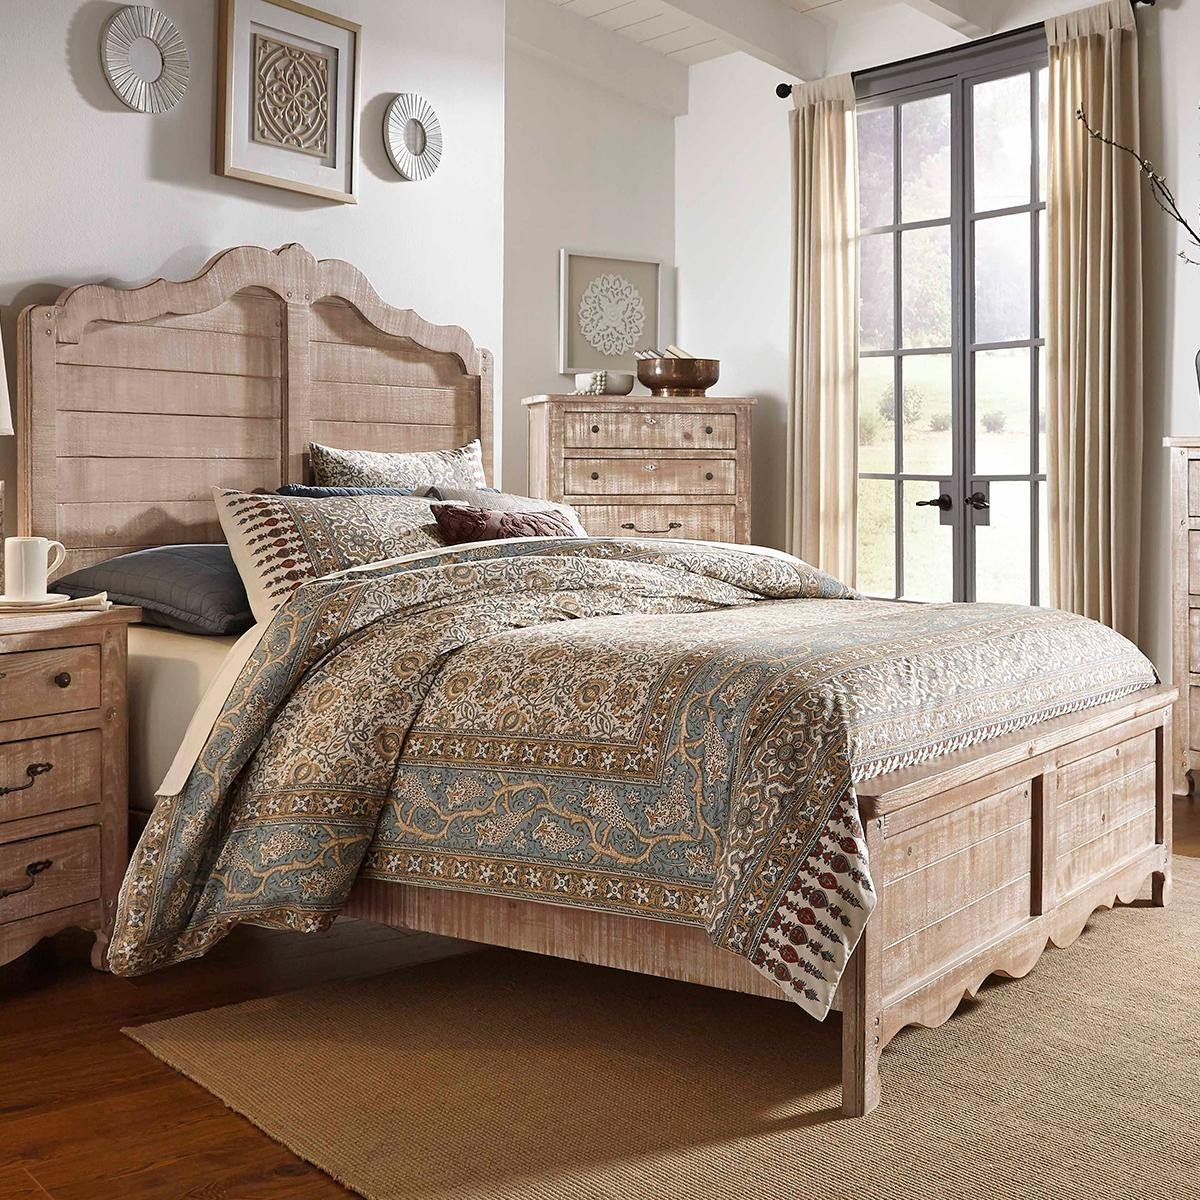 Distressed Wood Bedroom Furniture Luxury Tiddal Home Chatsworth King Panel Bed In Chalk Distressed